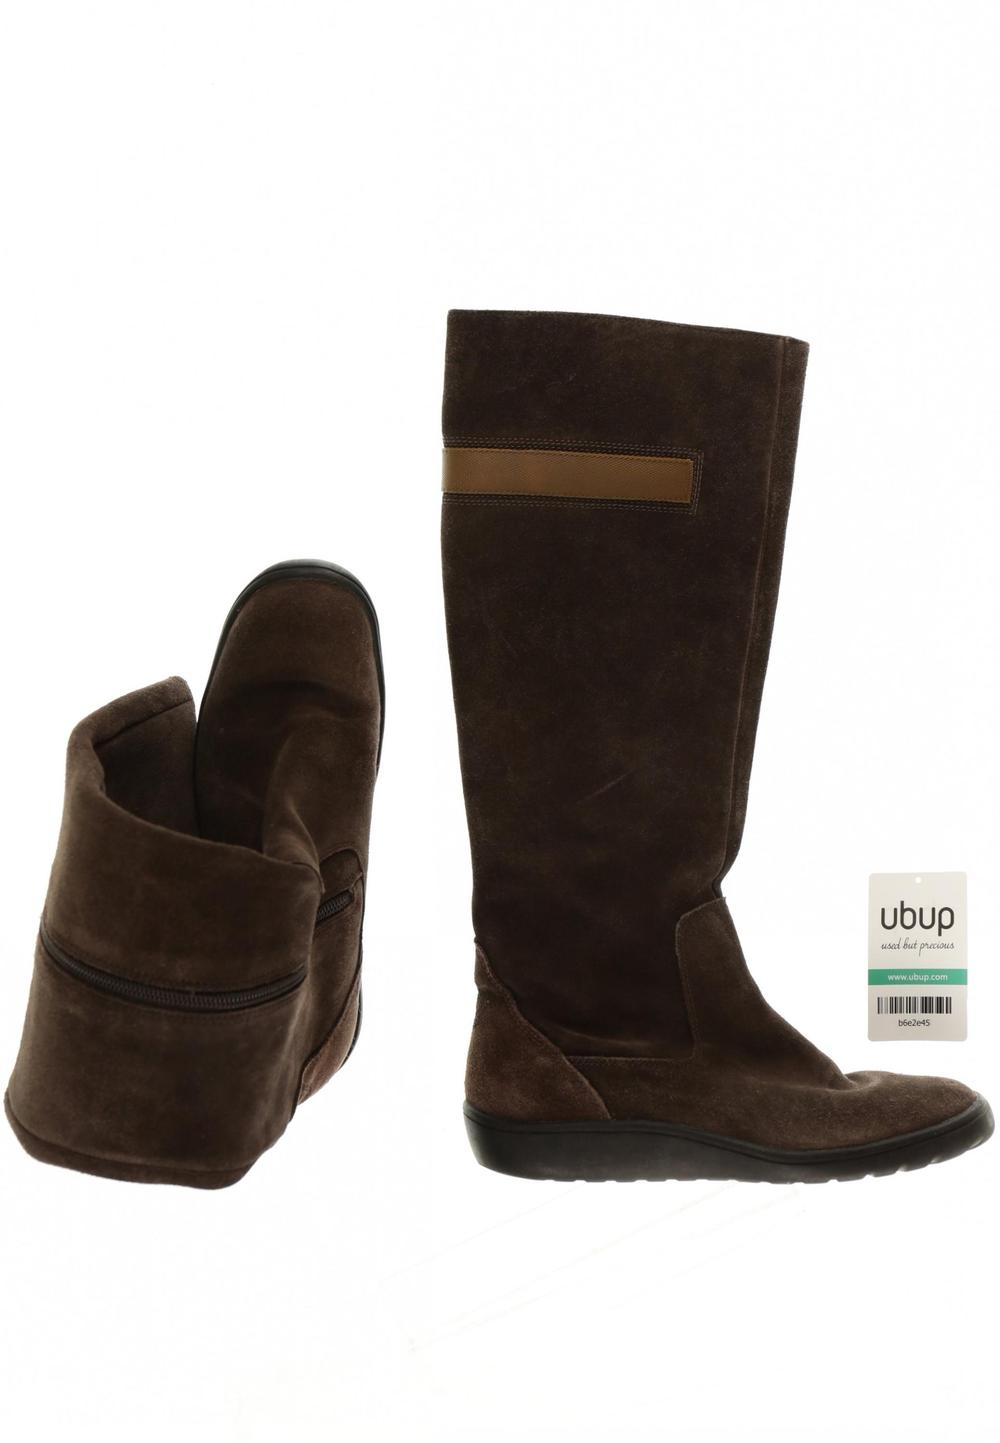 differently 4e96e 7a5f7 ubup | Timberland Damen Stiefel US 6 Second Hand kaufen